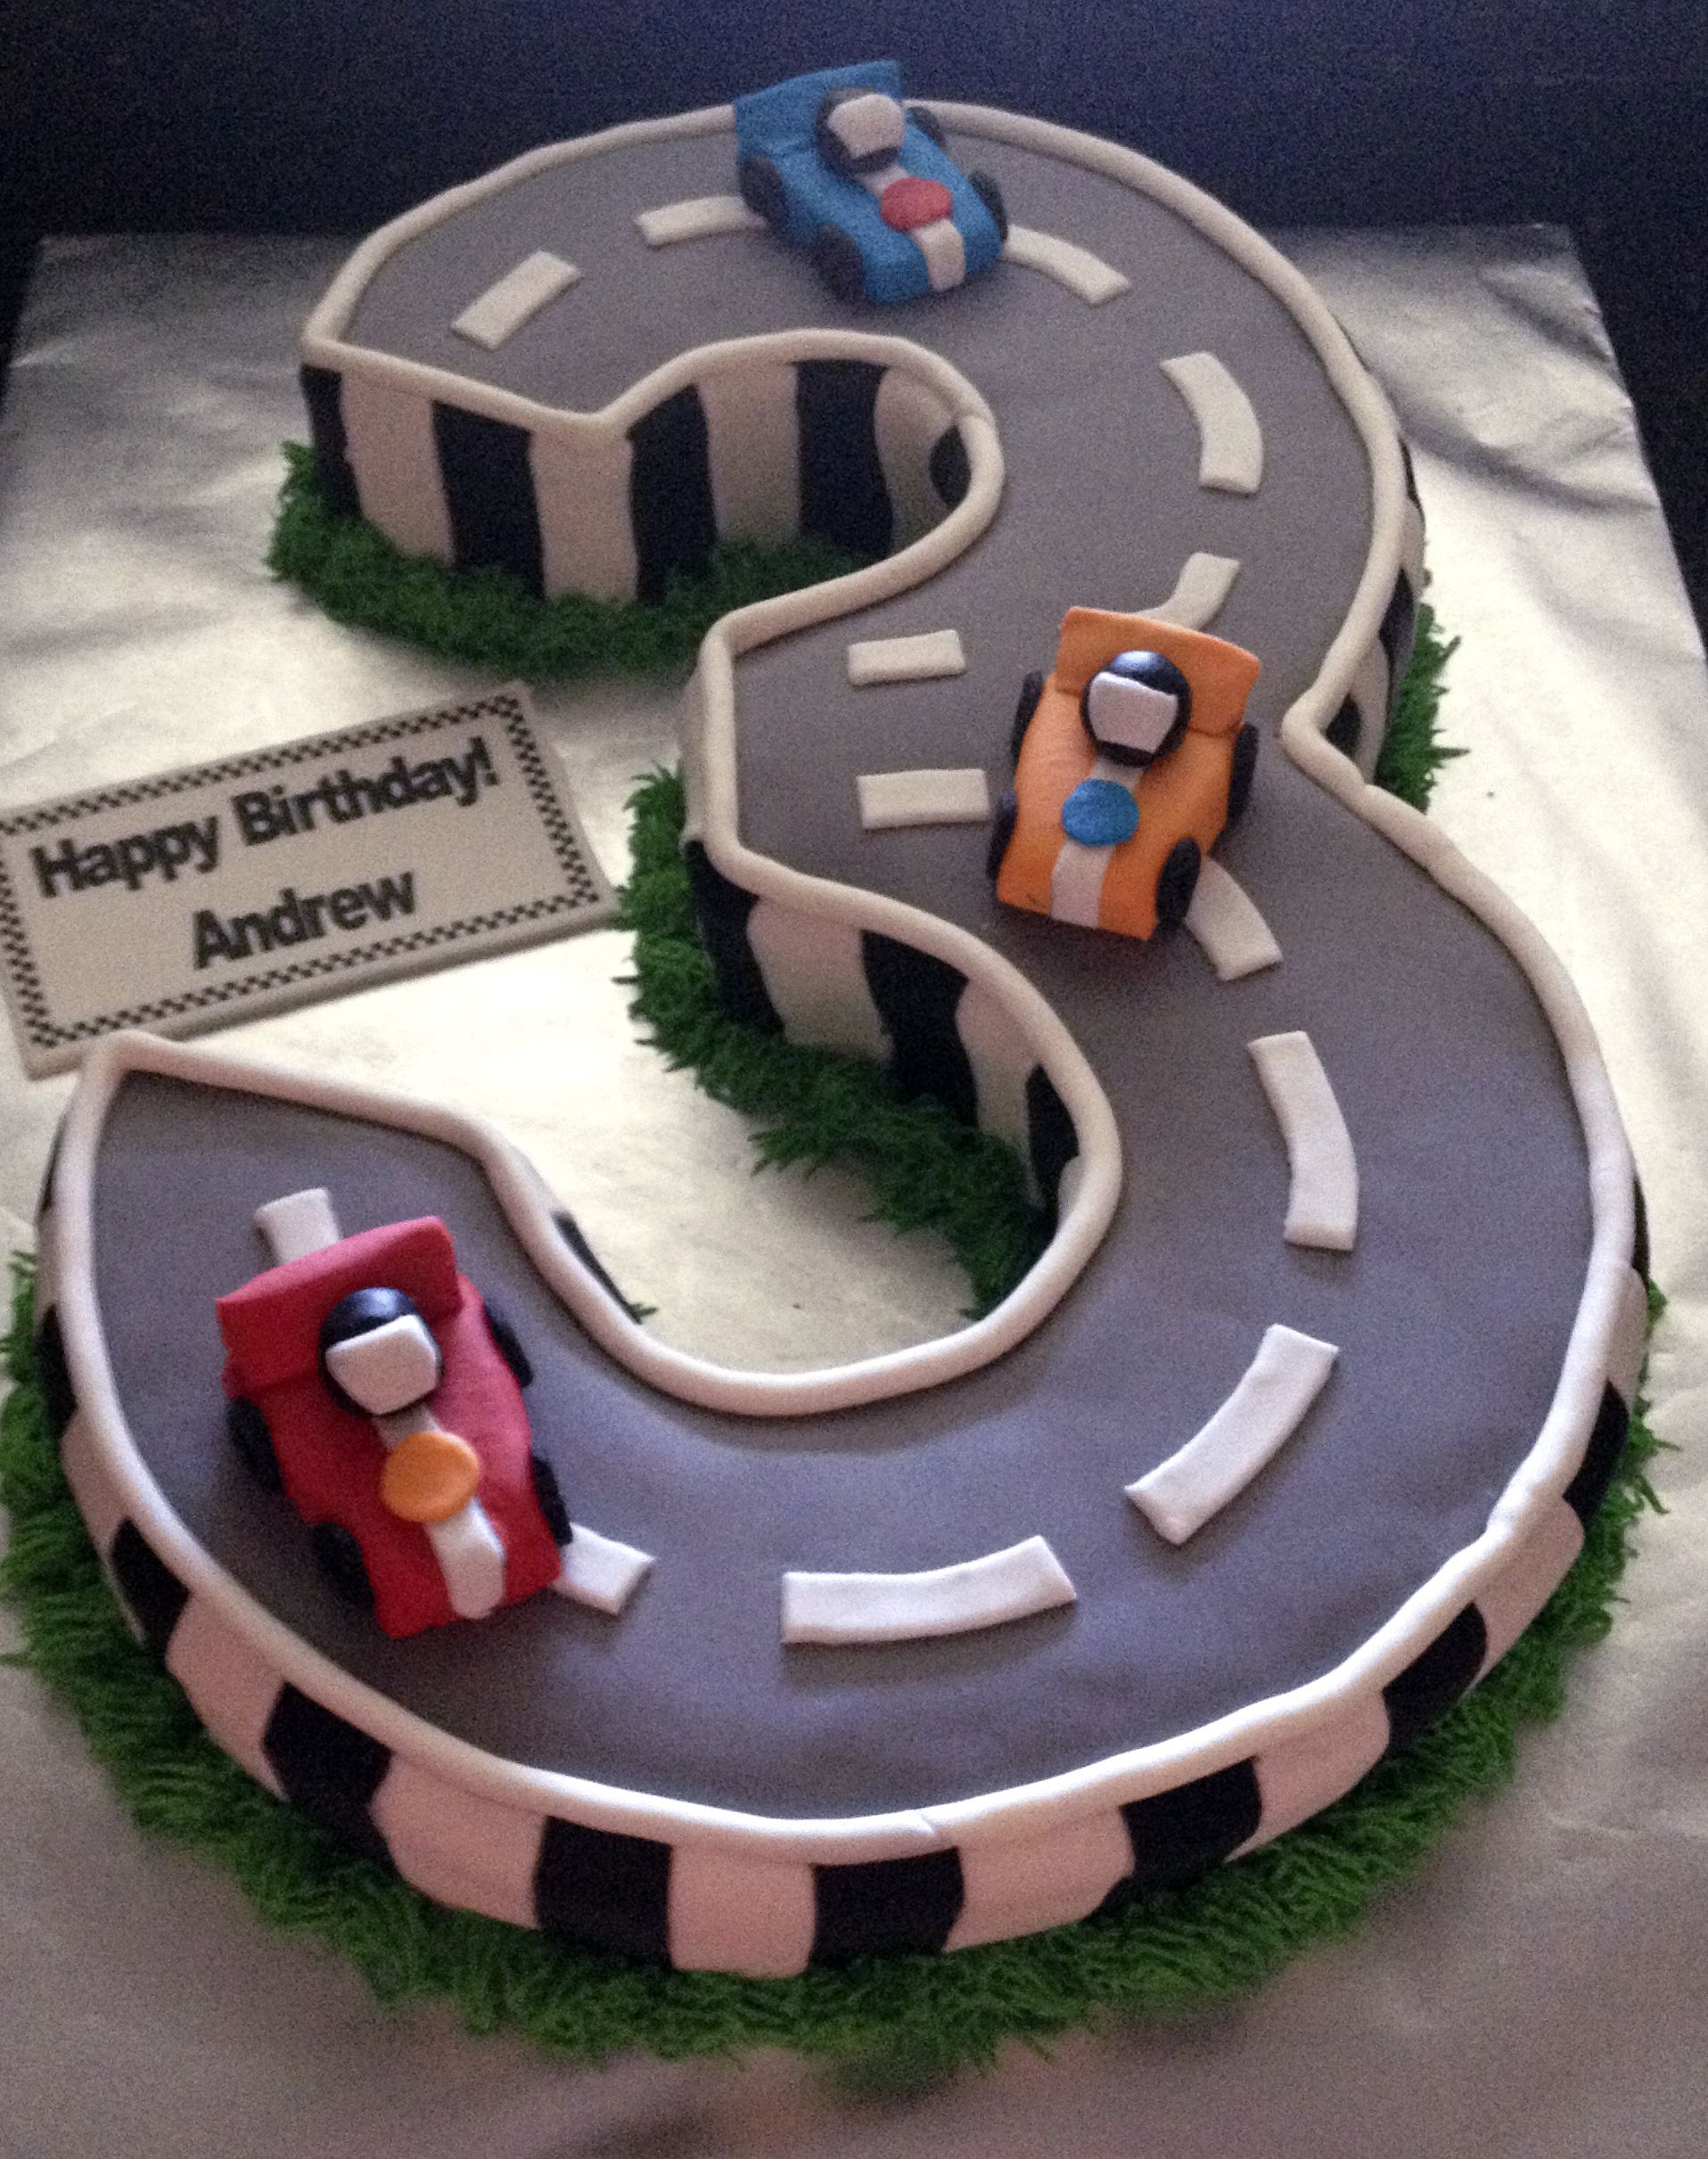 Number 3 Race Car Cake | Sweet IRB cakes | Race car cakes ...